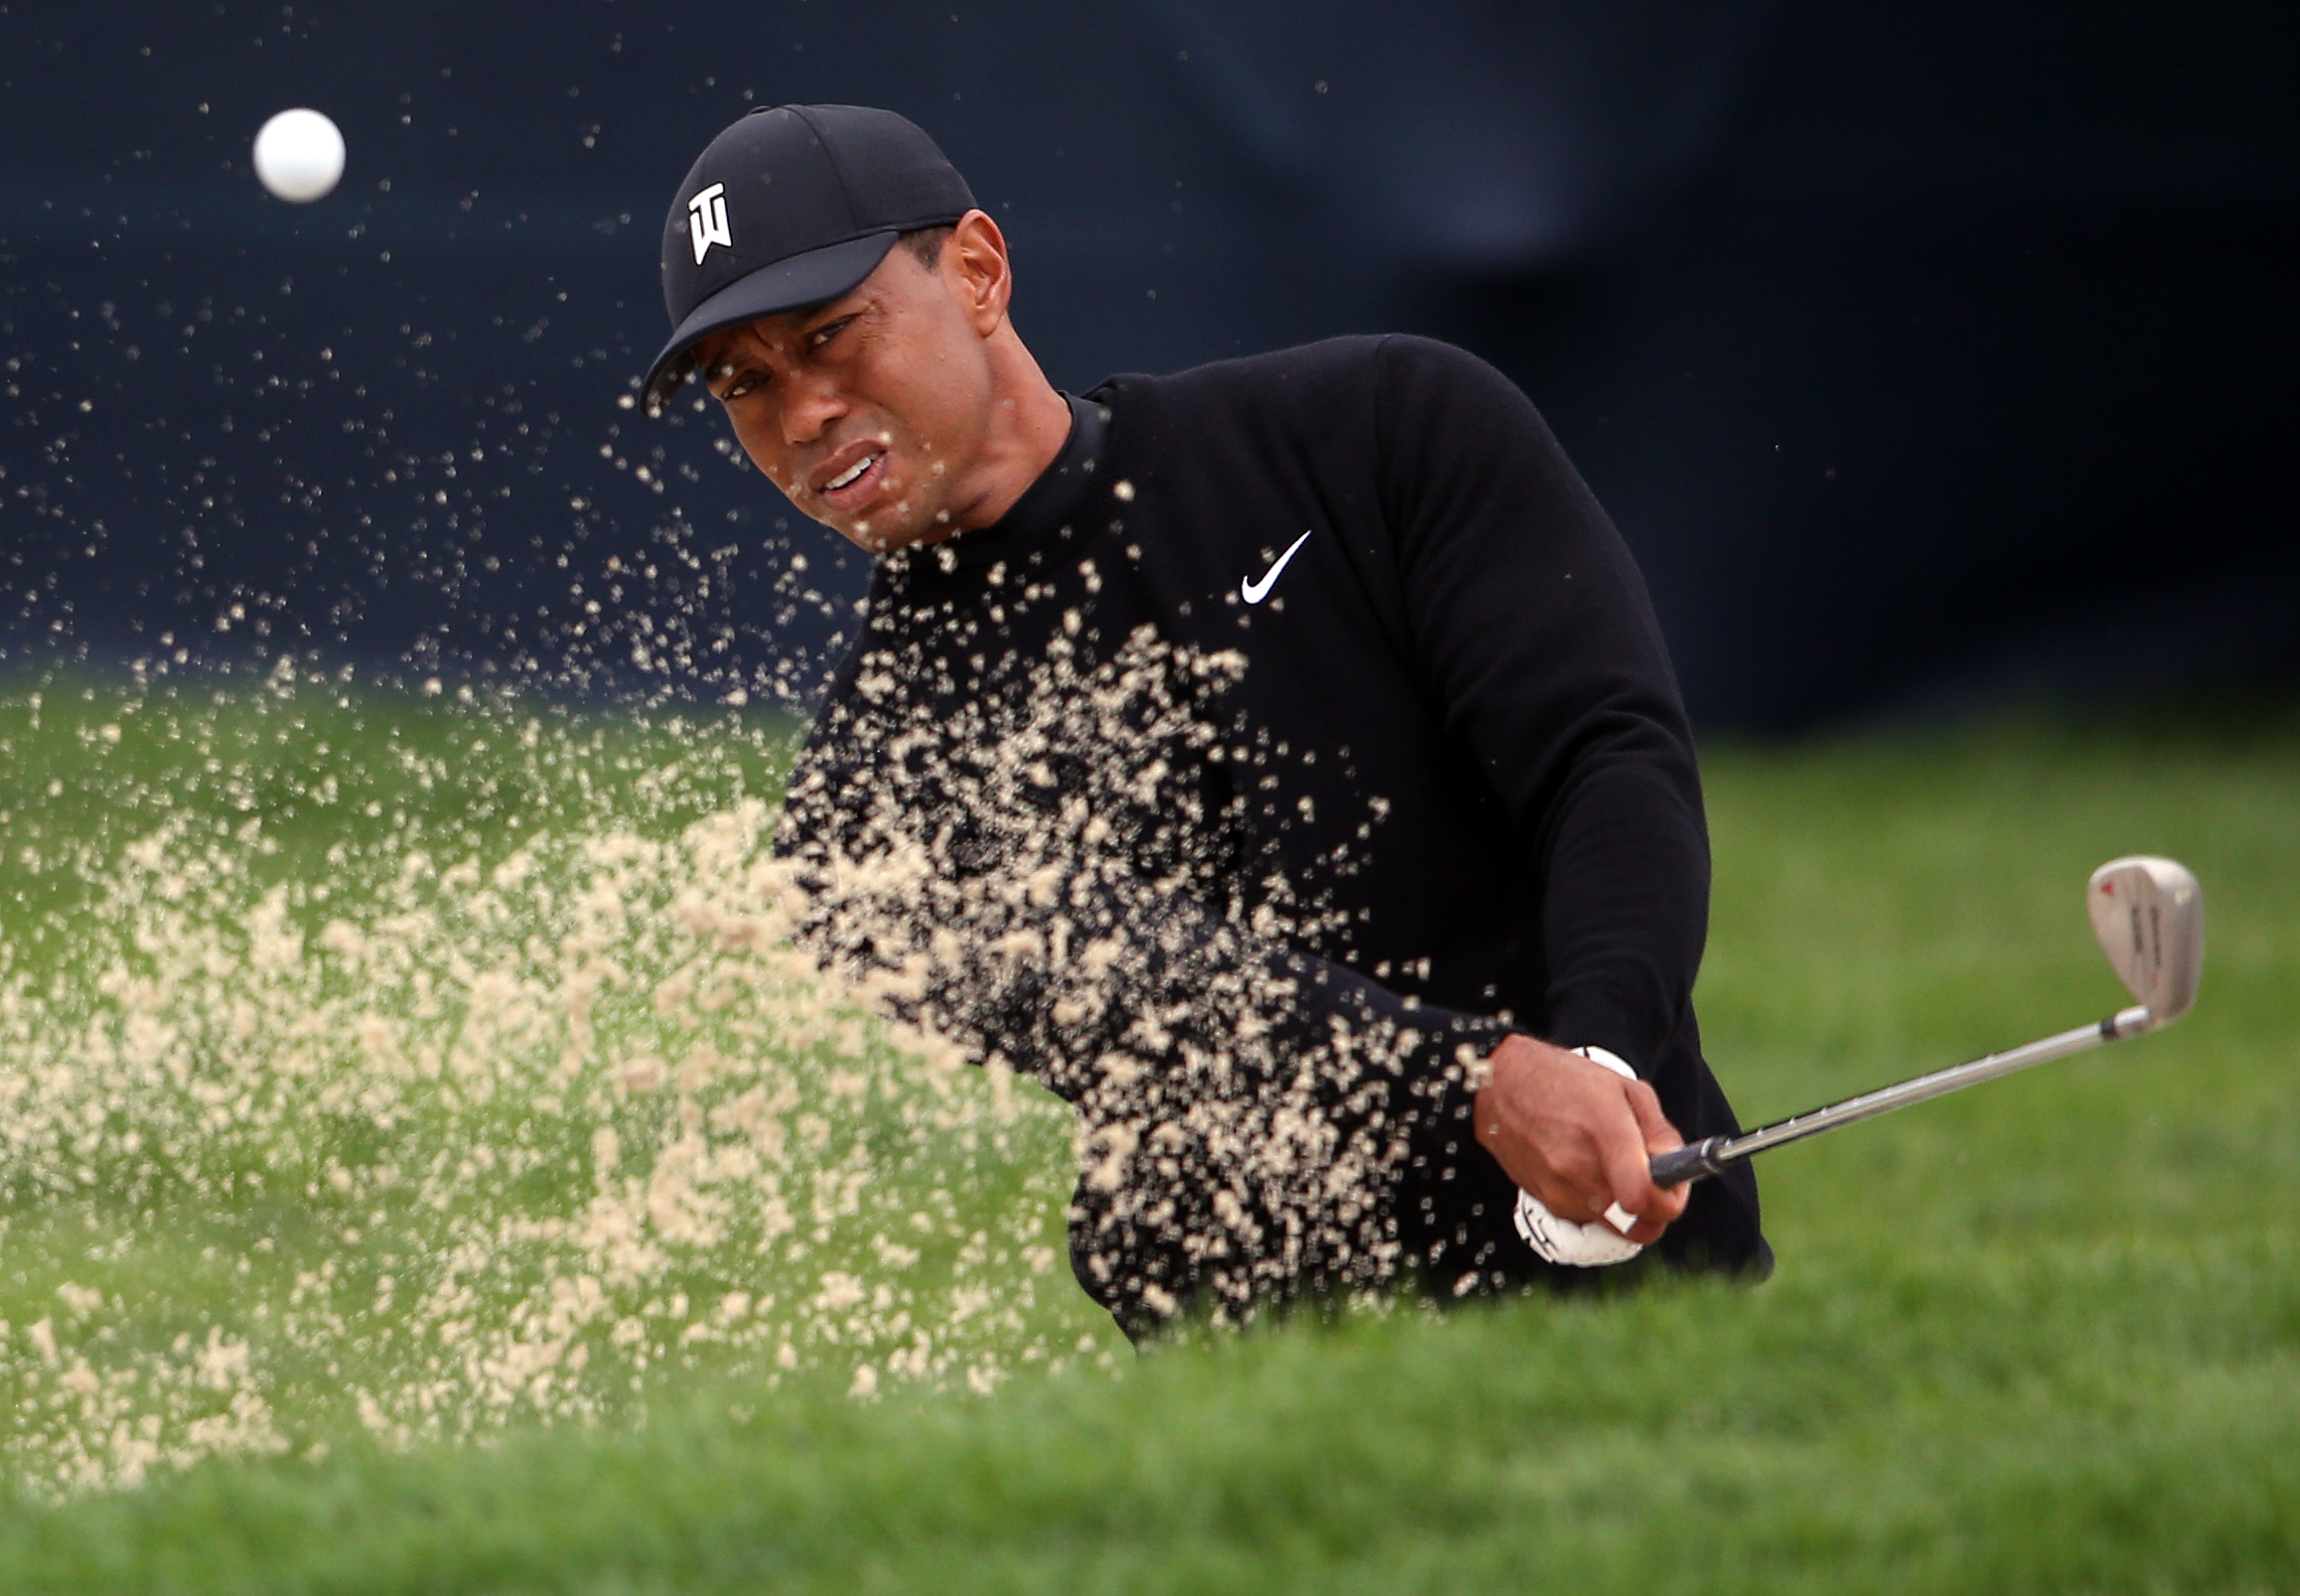 f62b261611f PGA Championship 2019 odds: Tiger Woods among the betting favorites ...